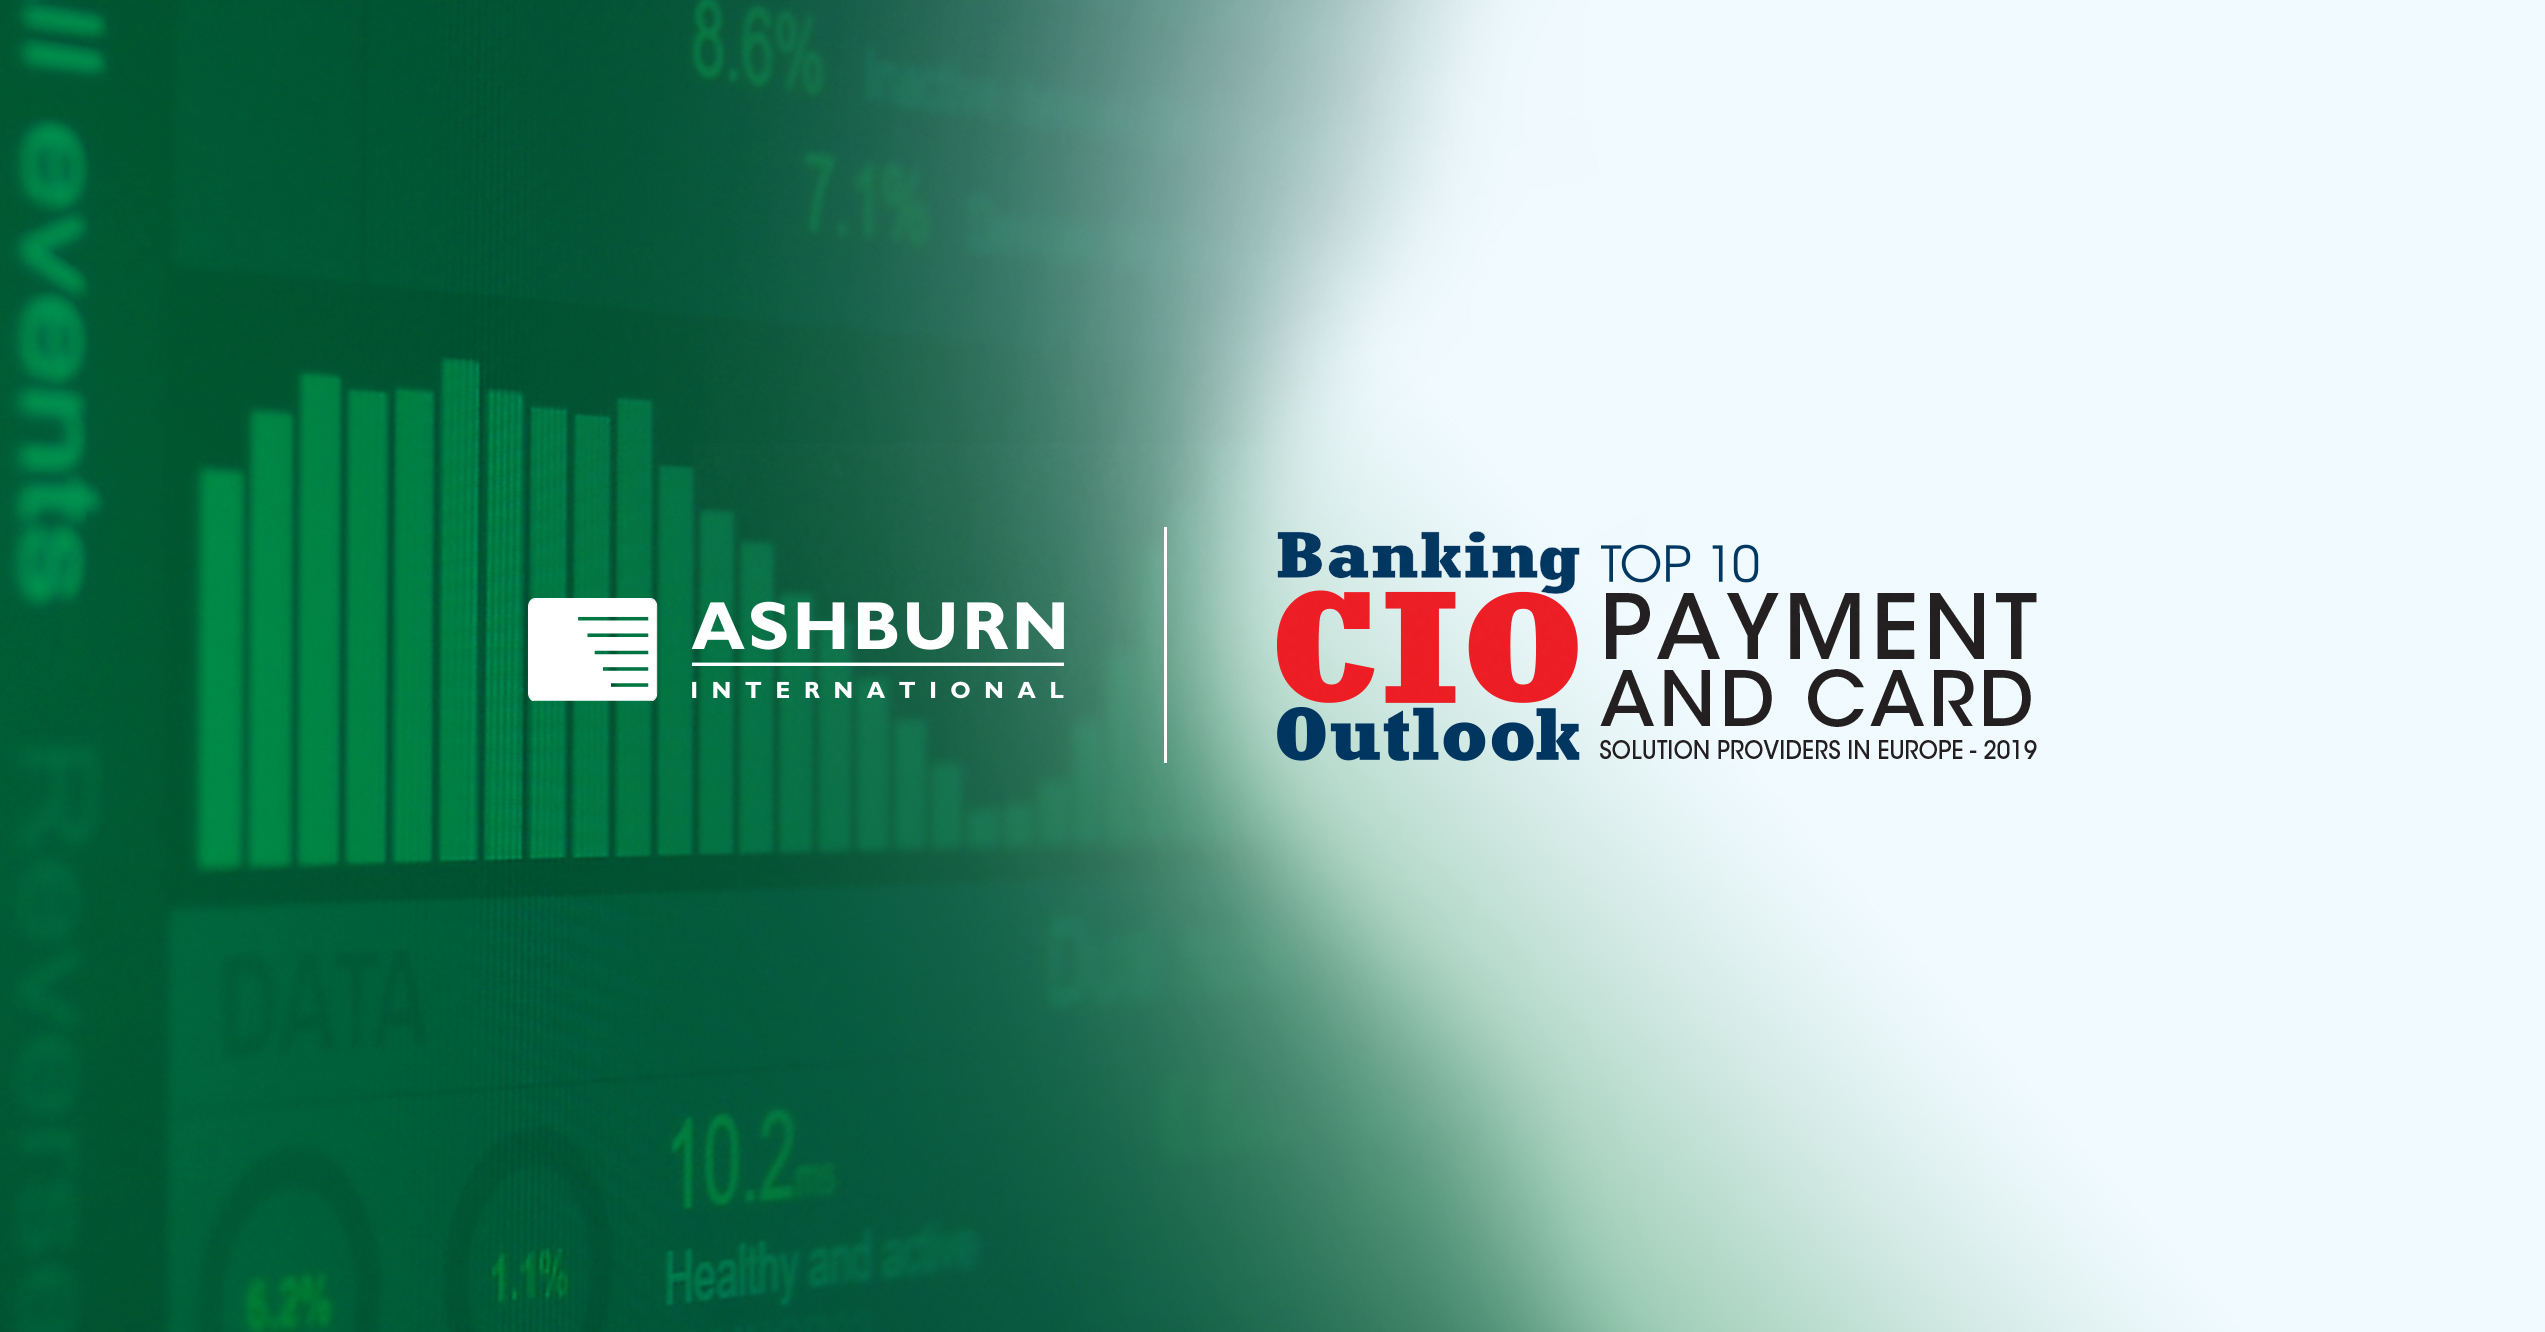 ASHBURN International in TOP 10 Payment and Card Solution Providers in Europe 2019